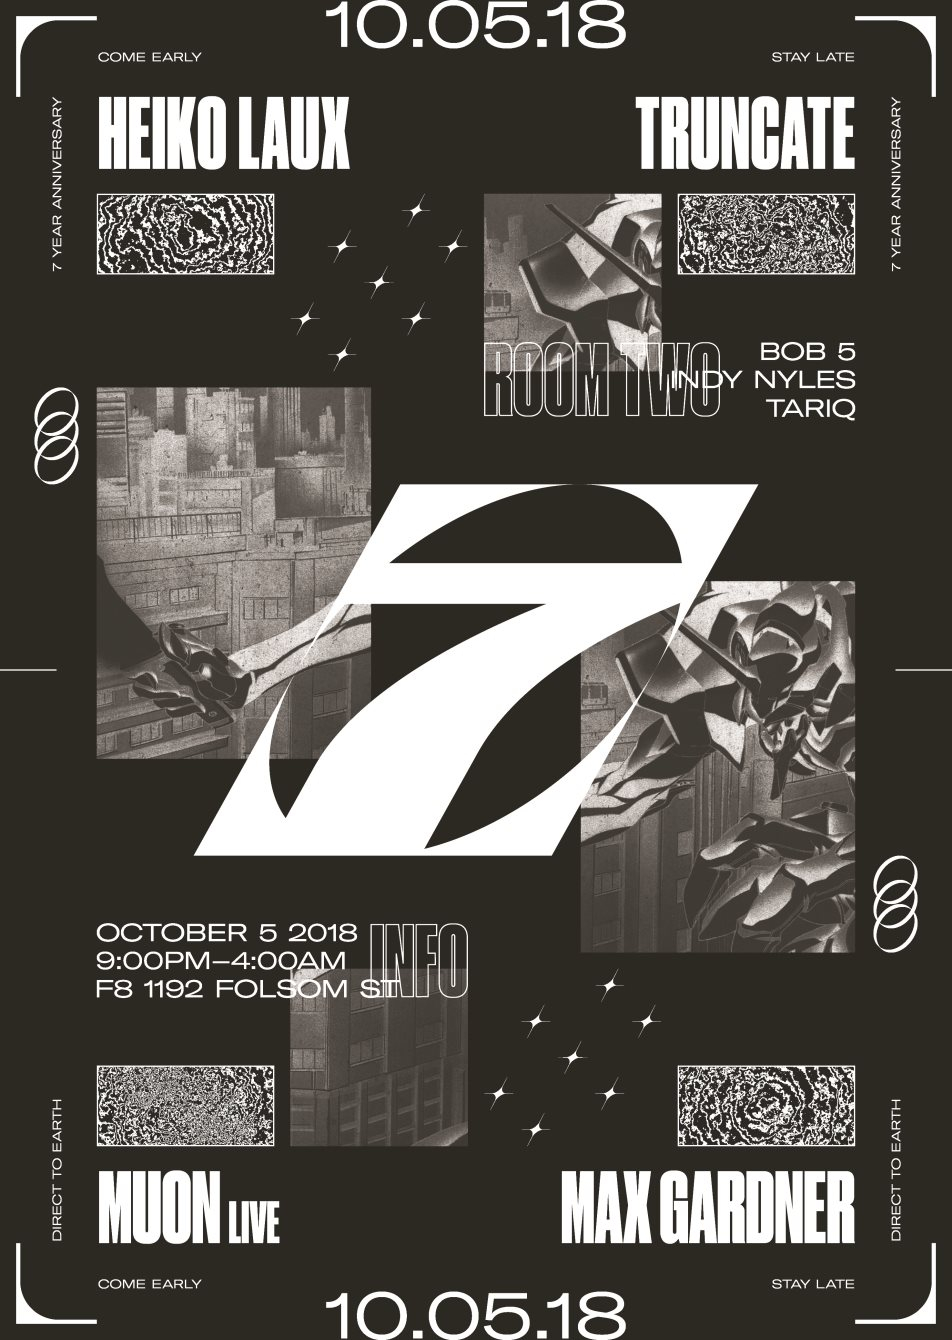 7 Years of Direct to Earth with Heiko Laux and Truncate - Flyer back